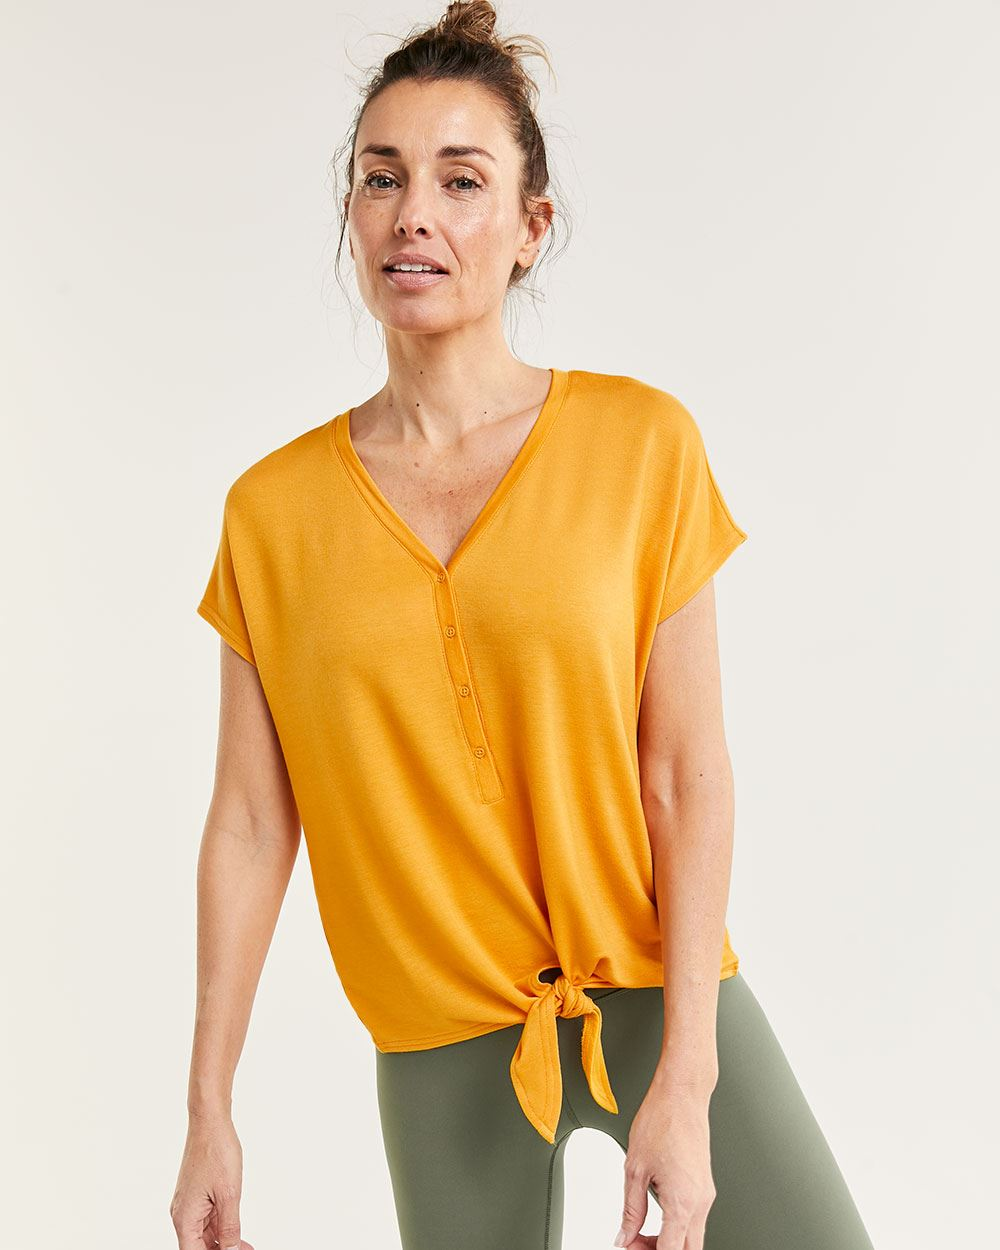 Short Sleeve Henley V-Neck Top with Knot Hyba